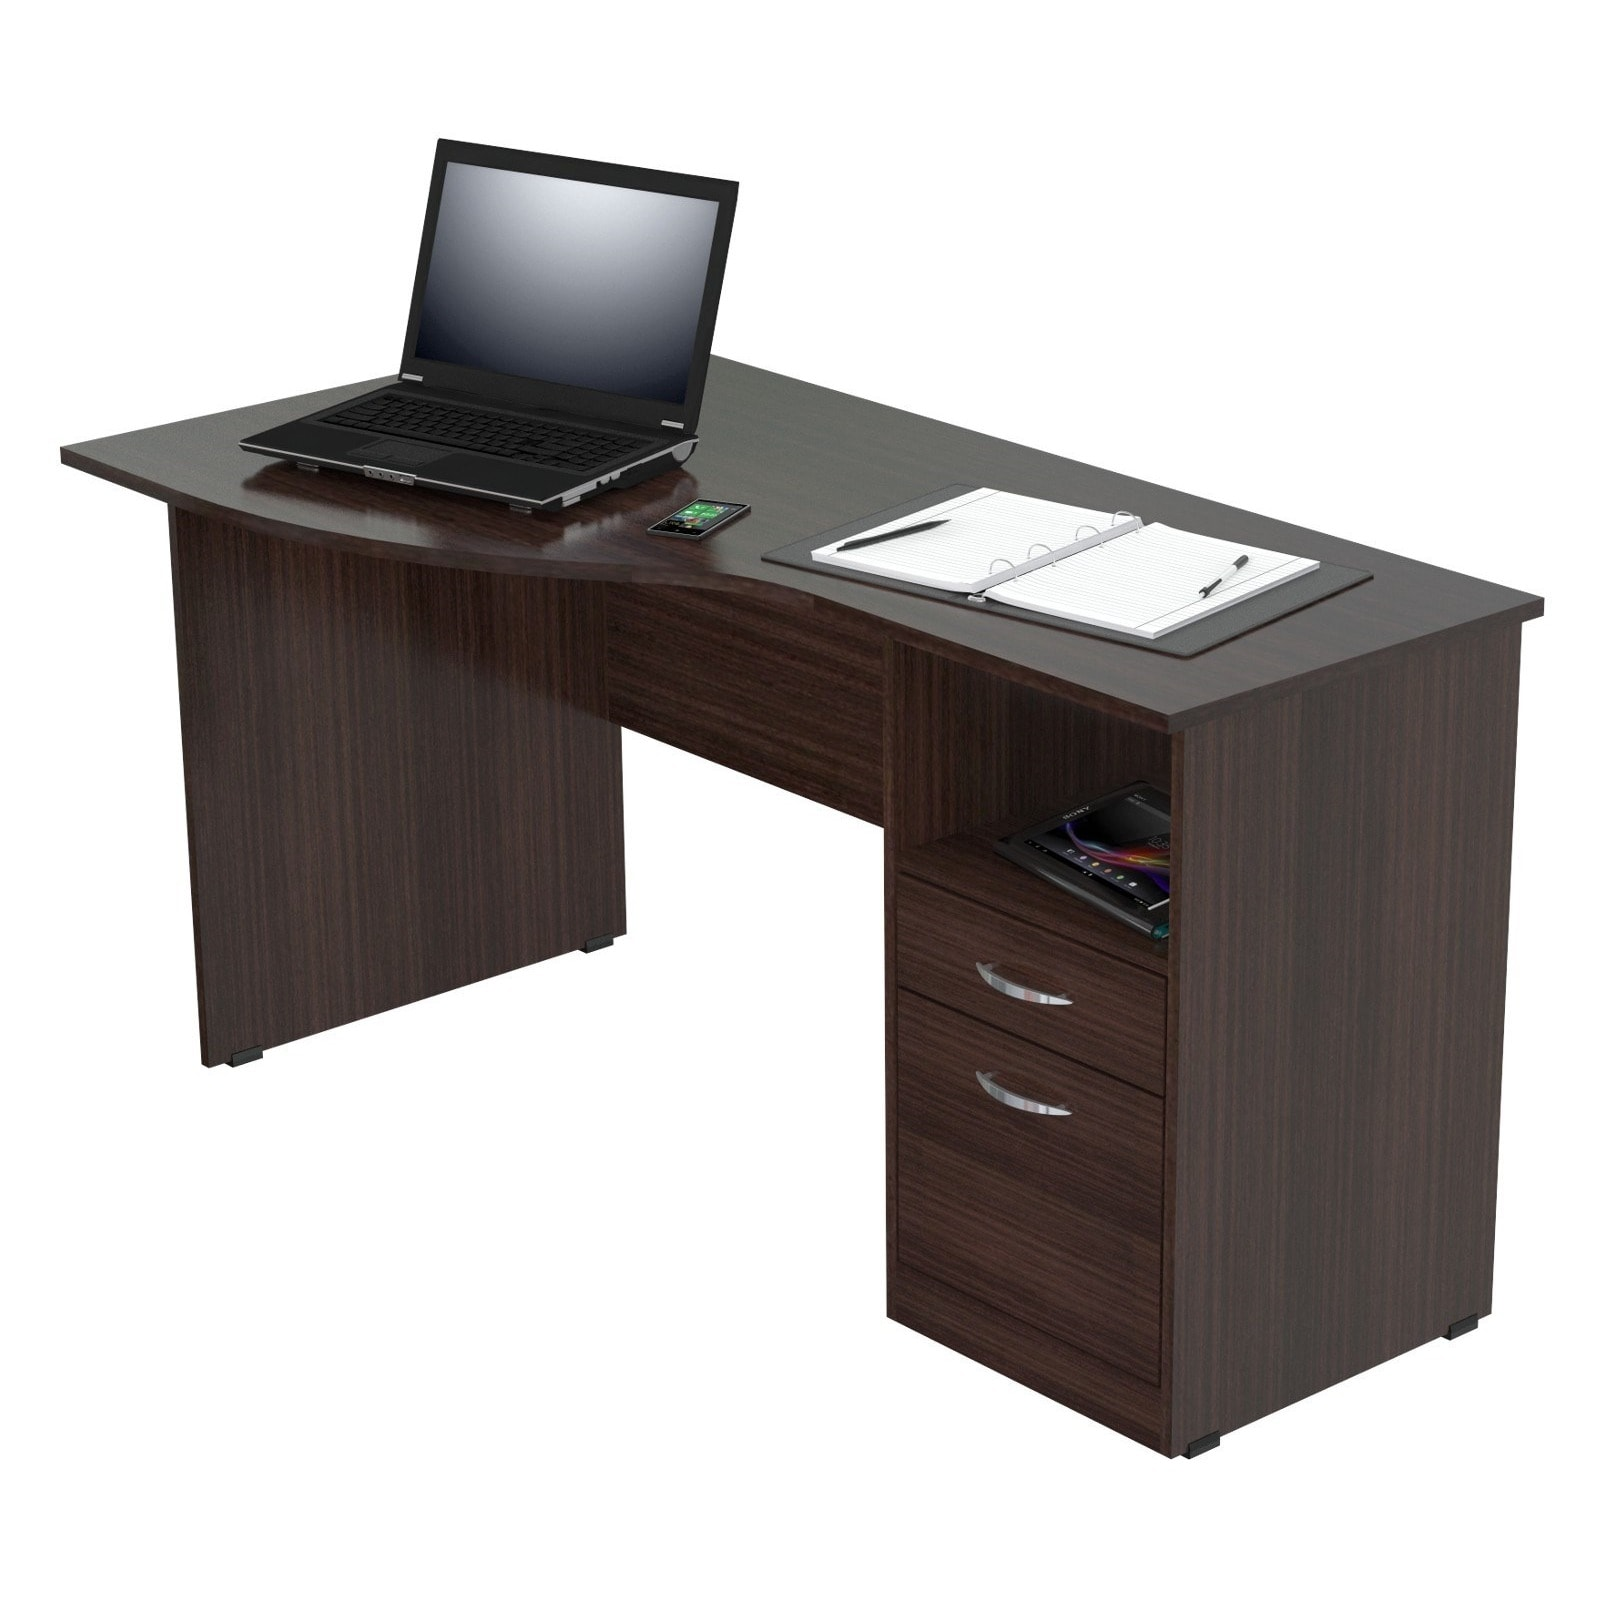 Inval Espresso Curved Top Desk Free Shipping Today 14020850